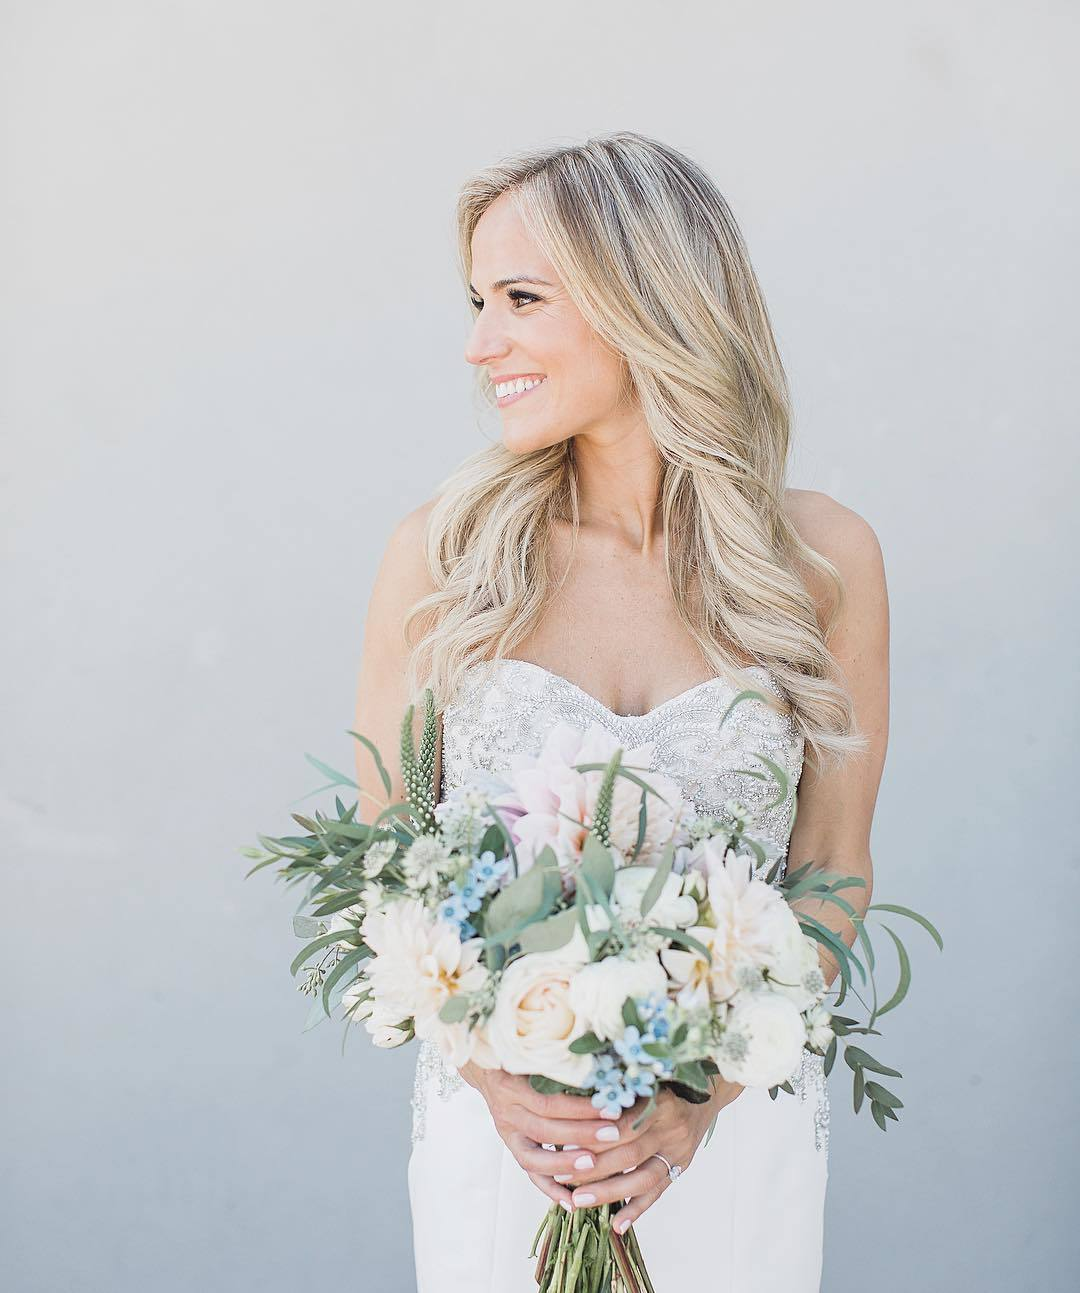 Classic wedding hairstyles: Woman with long bleach blonde hair styled into loose curls, wearing sweetheart wedding dress and holding flowers